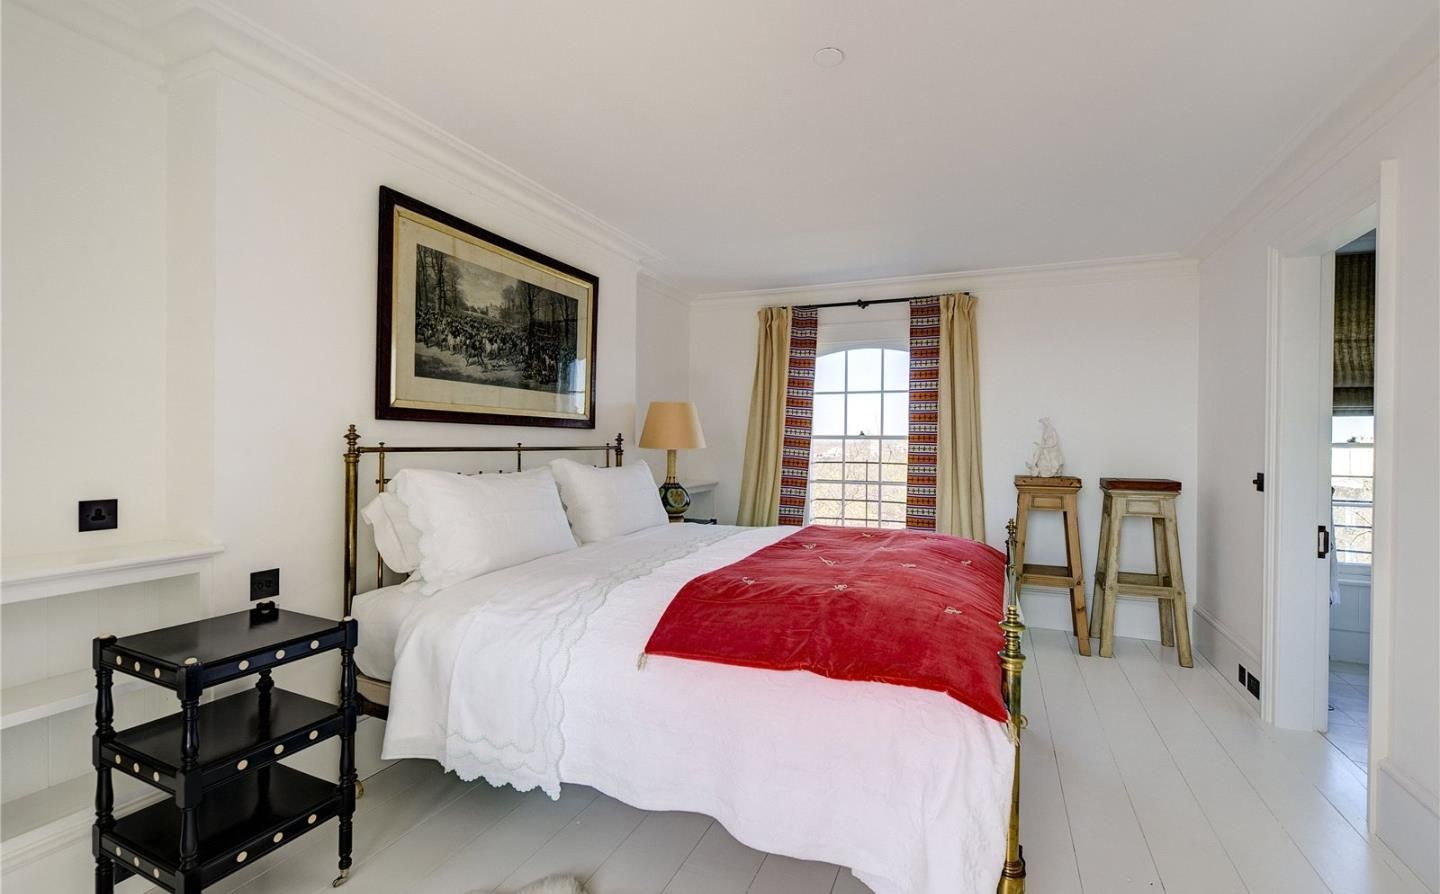 Savills   Campden Hill Square, London, W8 7JY   Property for sale